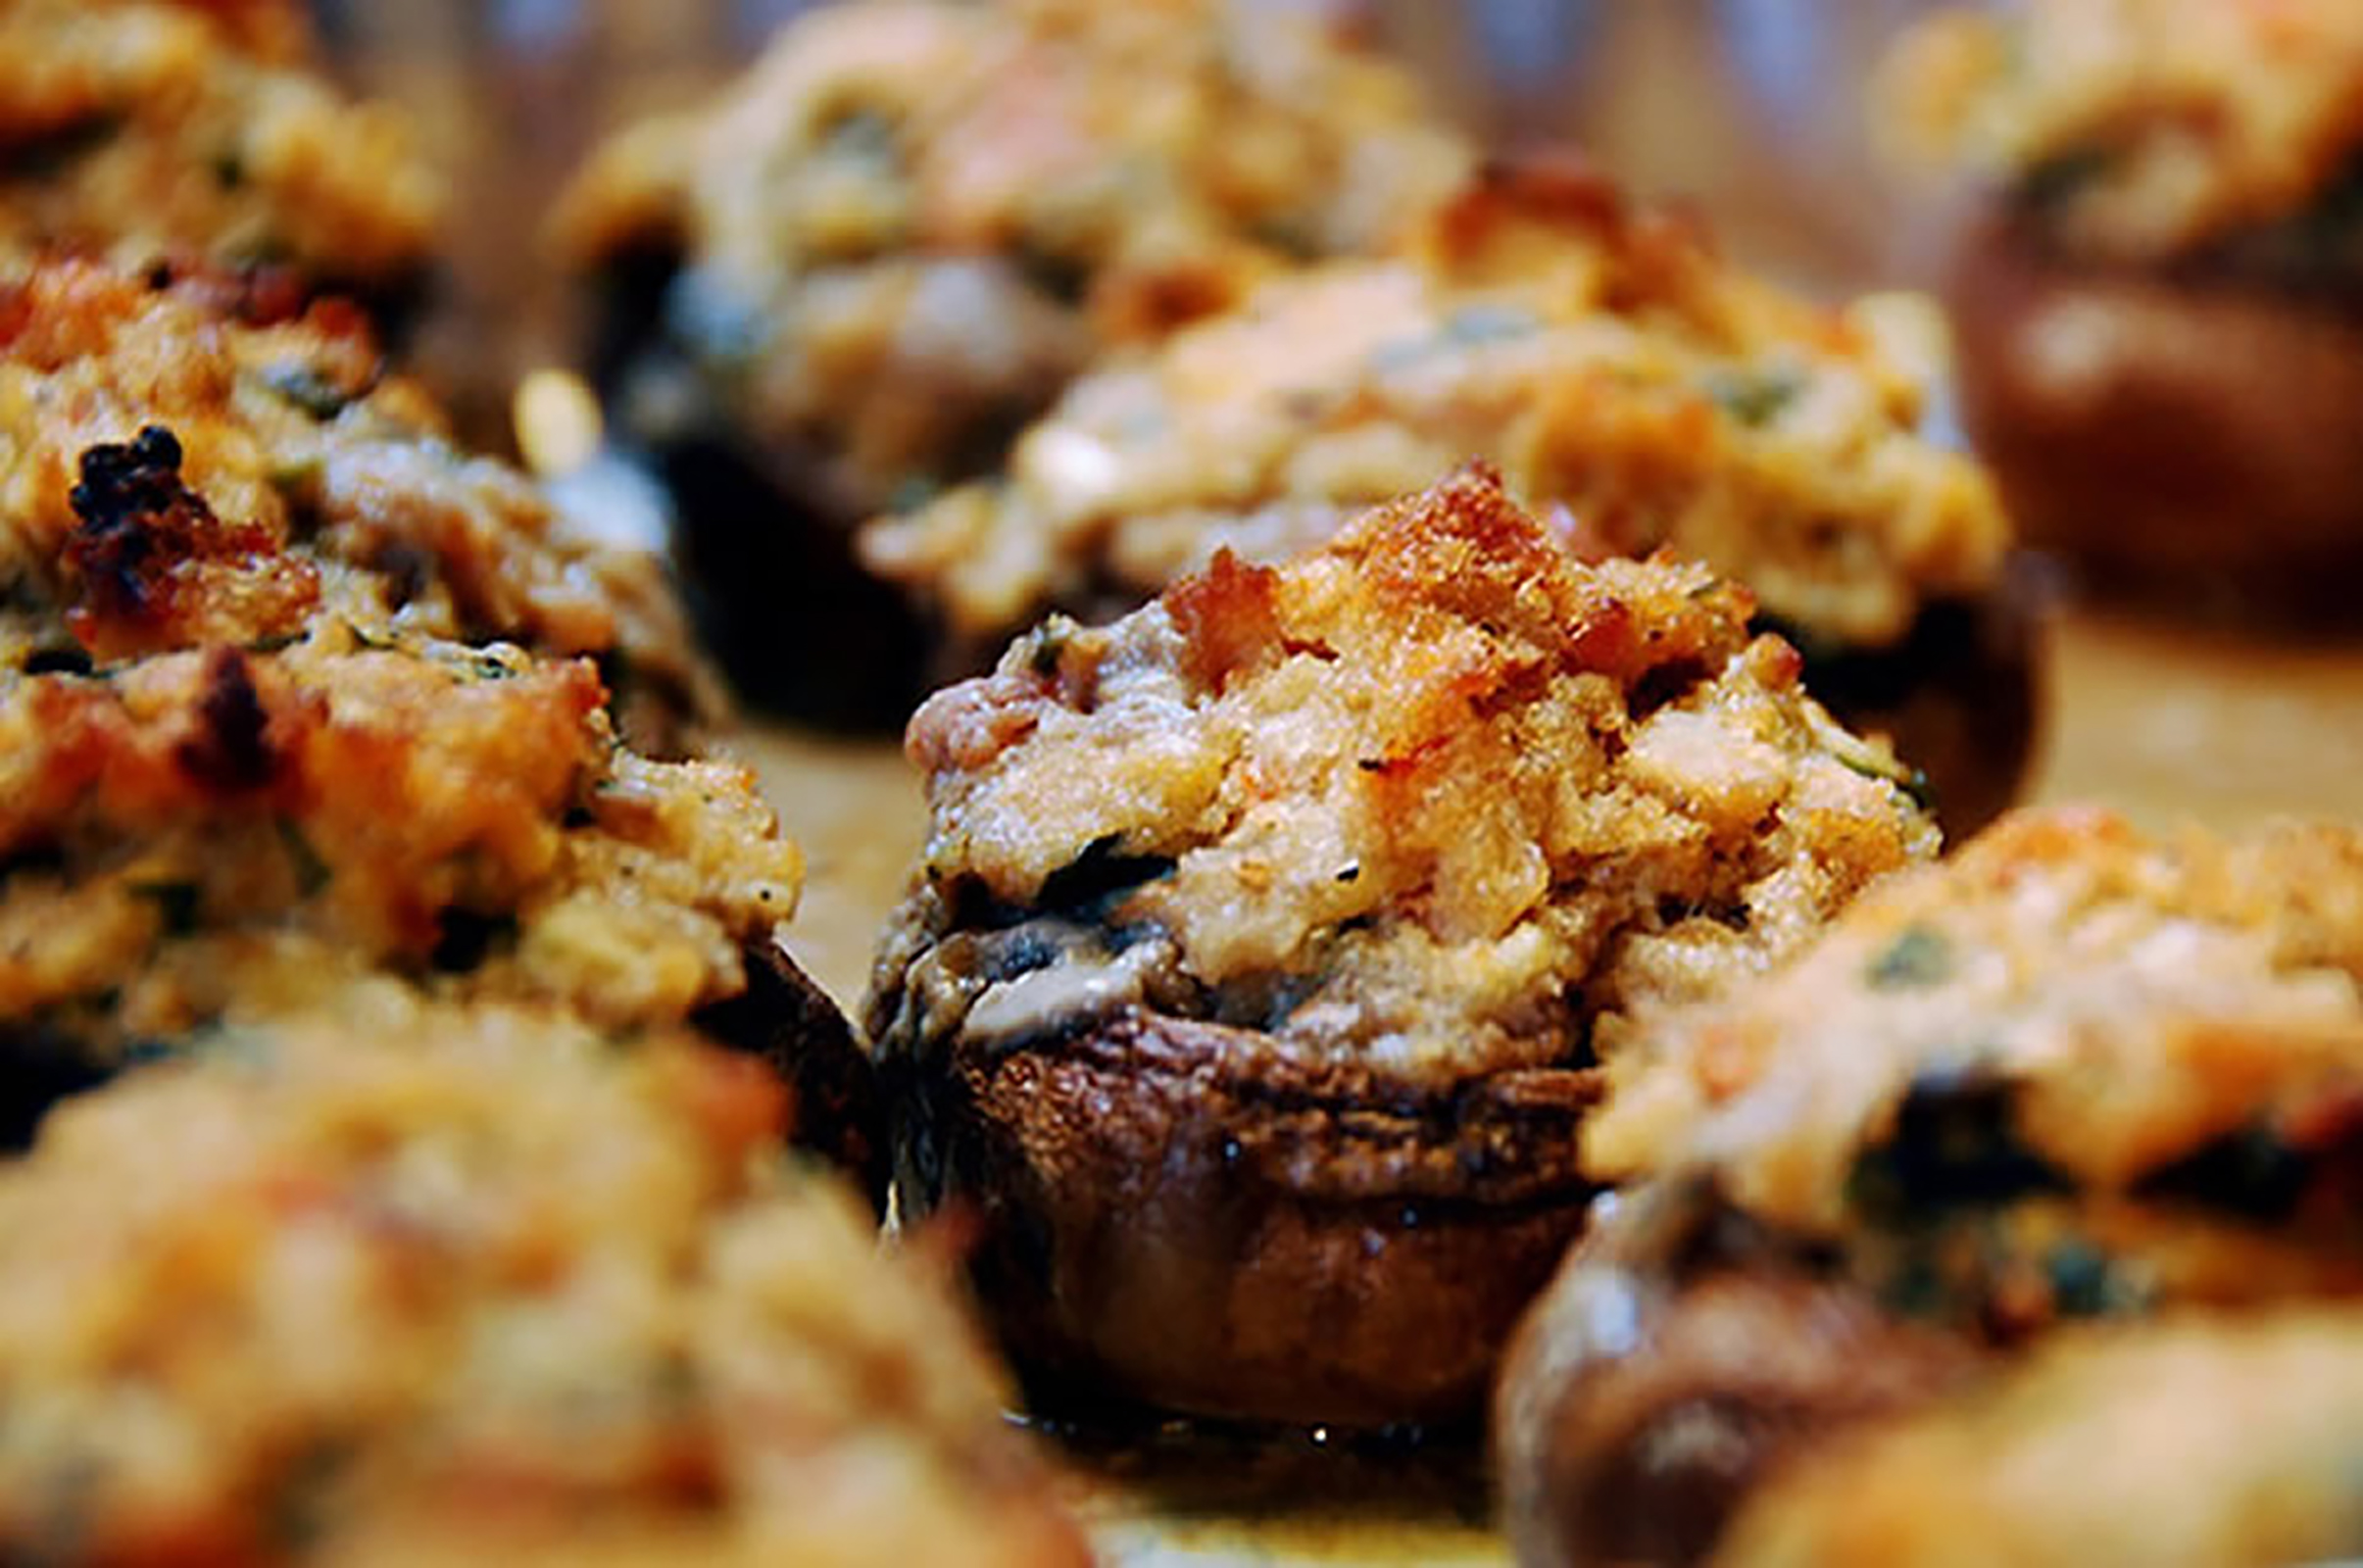 Creamy Herb-Stuffed Mushrooms